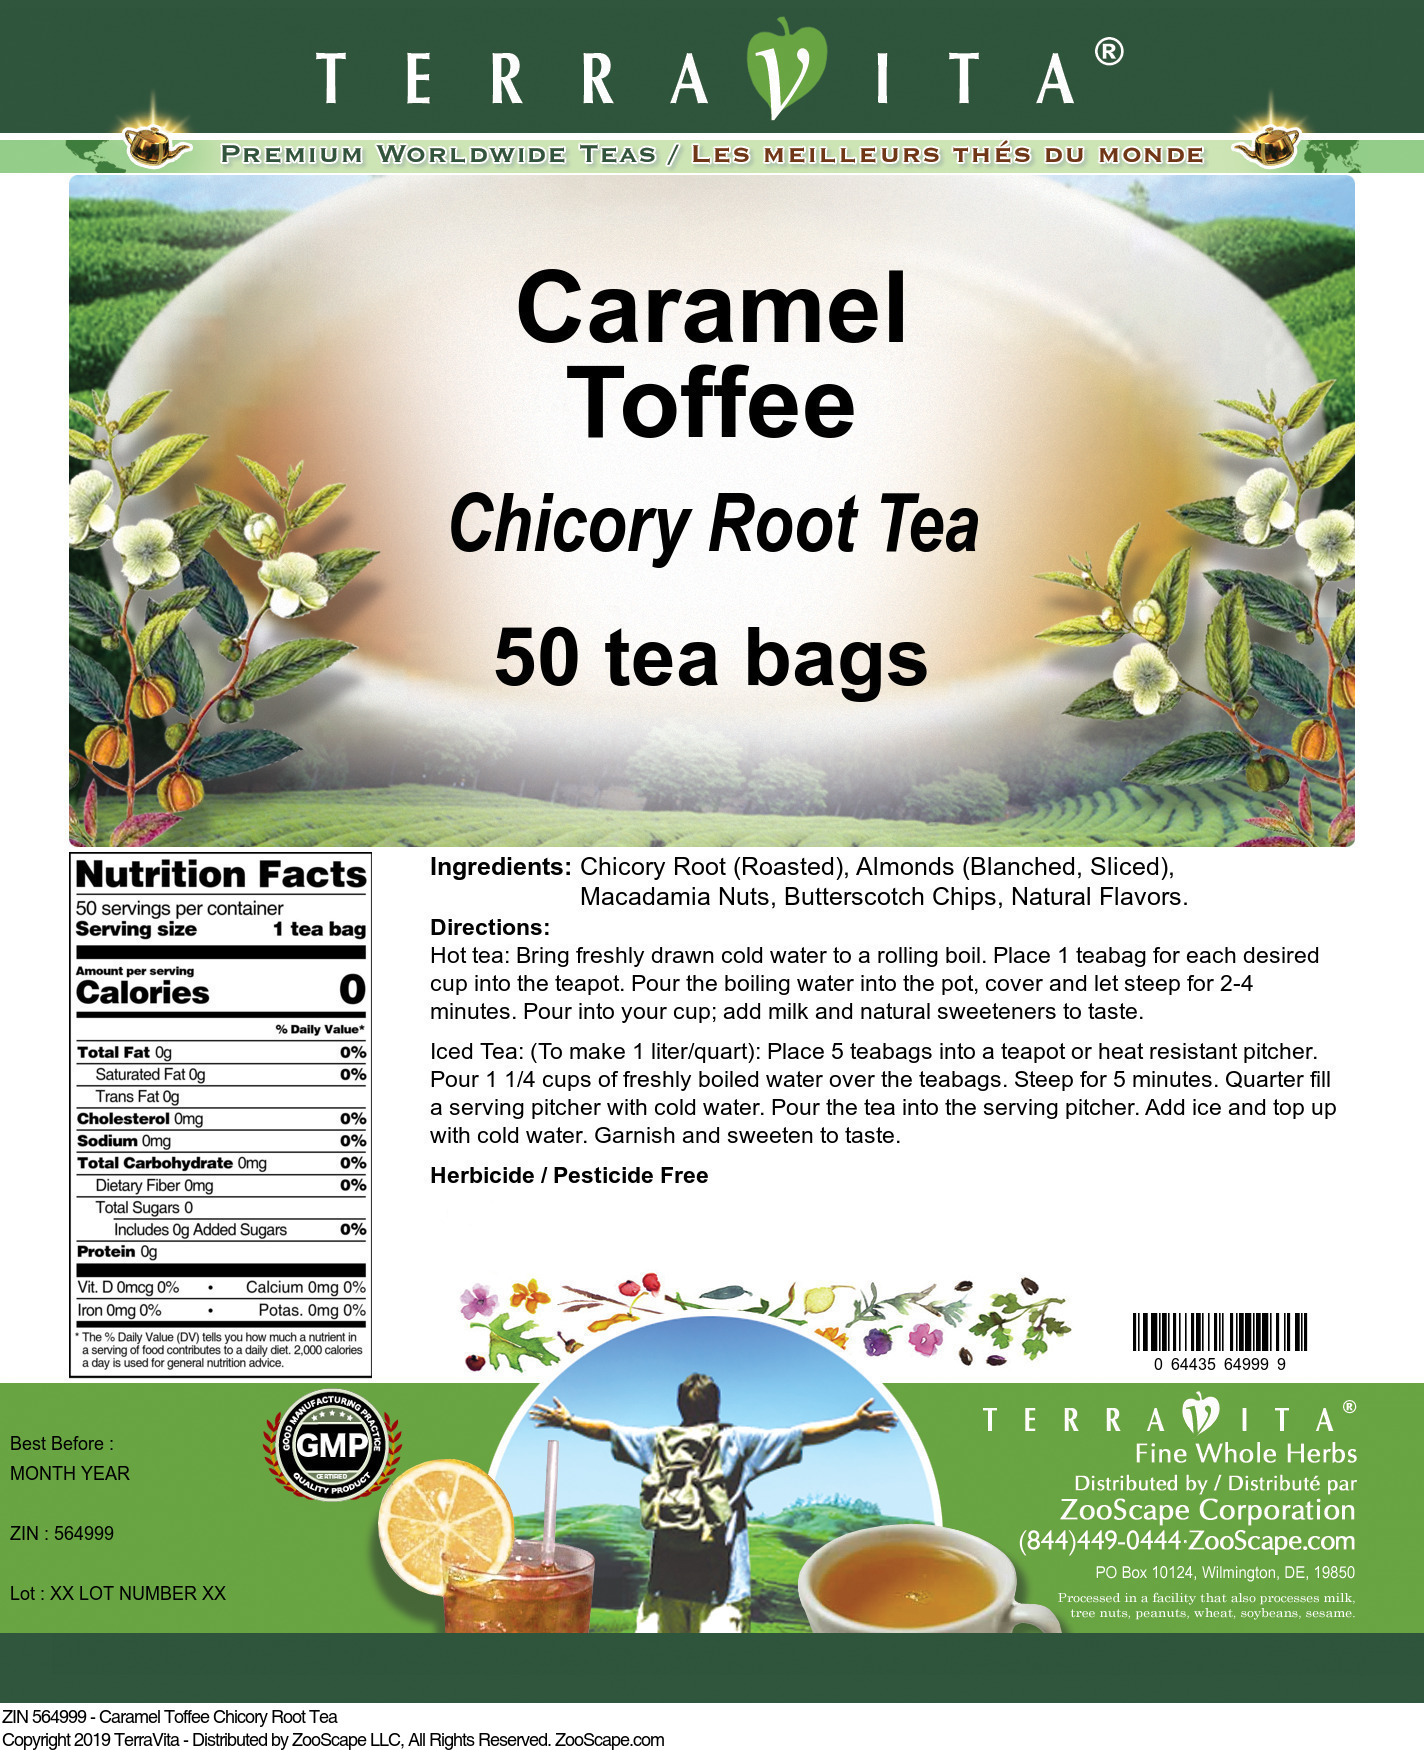 Caramel Toffee Chicory Root Tea